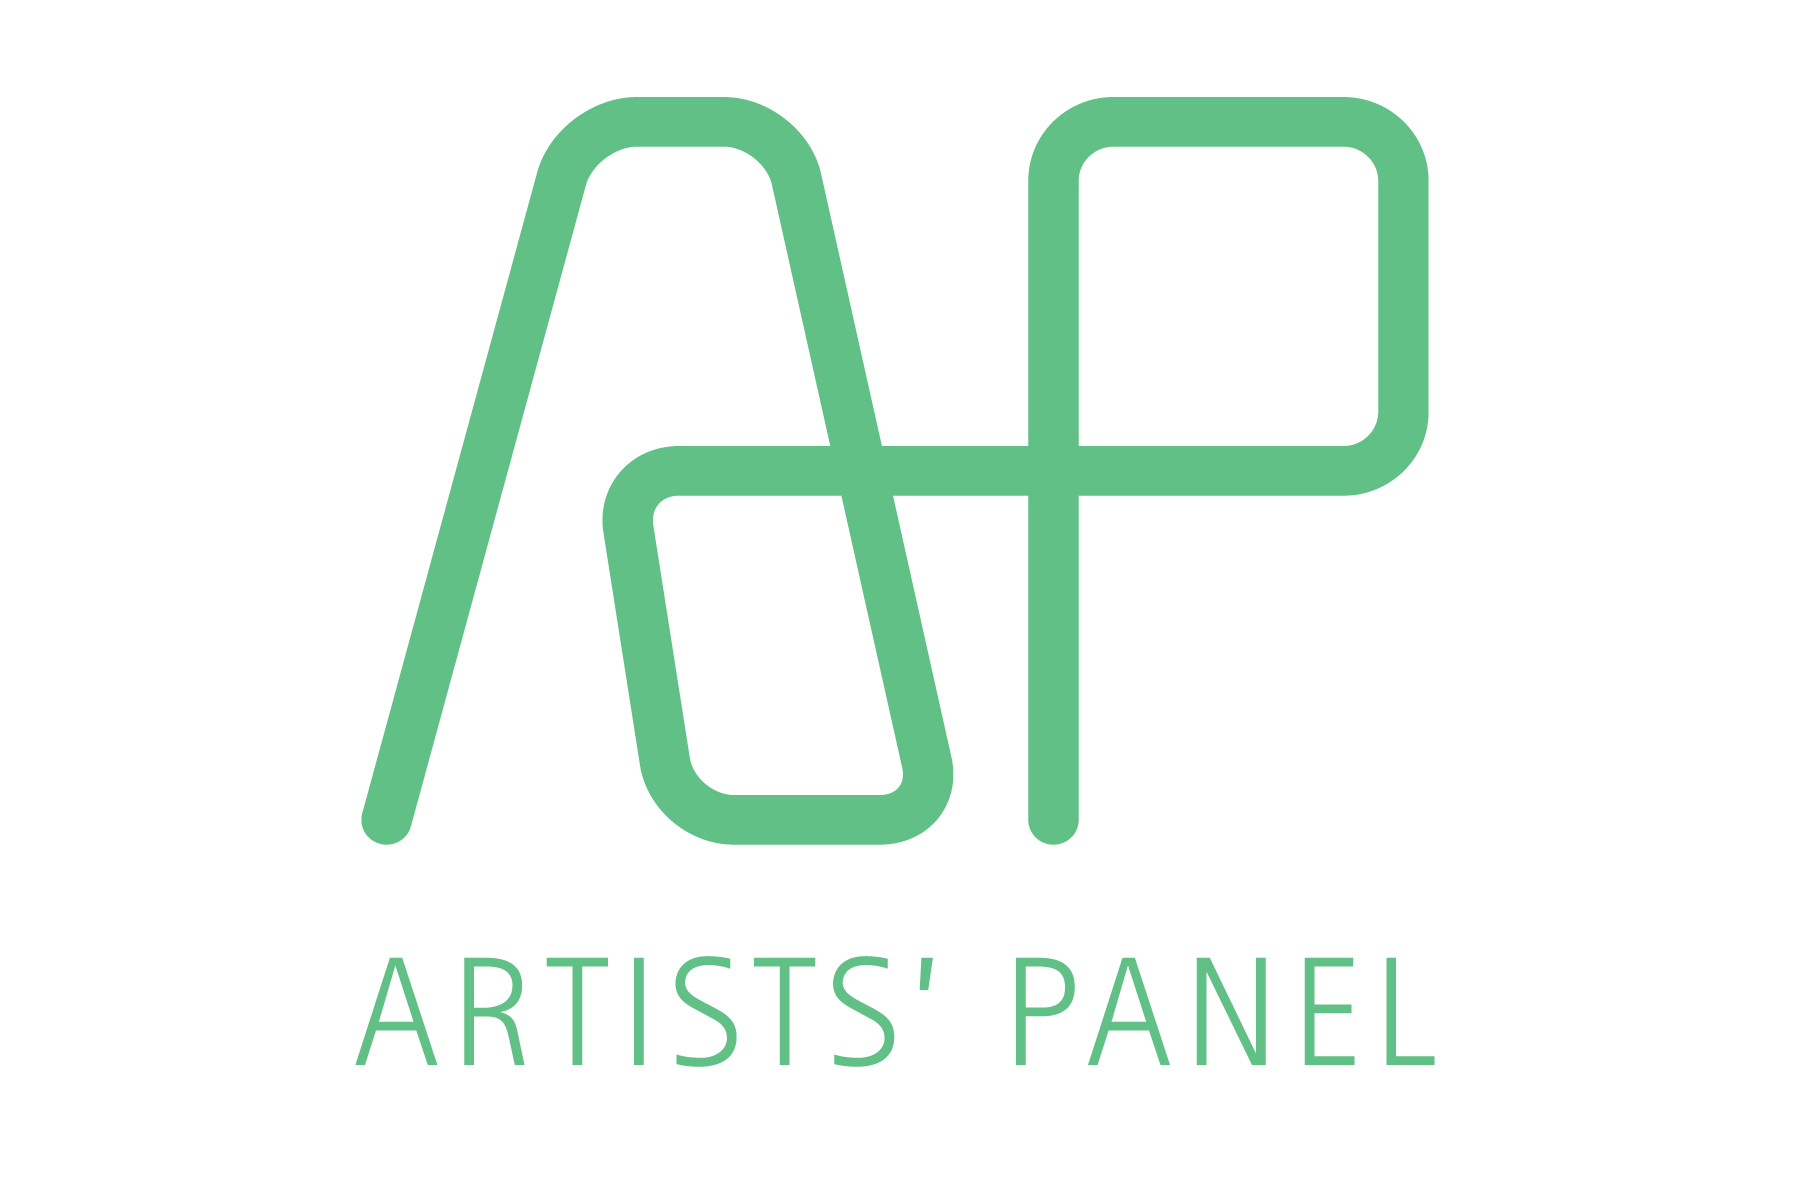 One of the core functions of theArtists' Panel is to provide funding for visual arts projects. They needed a strong brand to represent their activities and one that could be applied throughout their various literature (application forms & terms of service etc)    The solution was to use the characters 'A' and 'P' and to interconnect them to show the unity between what they do and the connection to the artist. The strong mono-line using rounded terminals is offset against the beautiful sans serif underneath. A paperclip was also made for the brand collateral.     The rest of the project can be seen here!